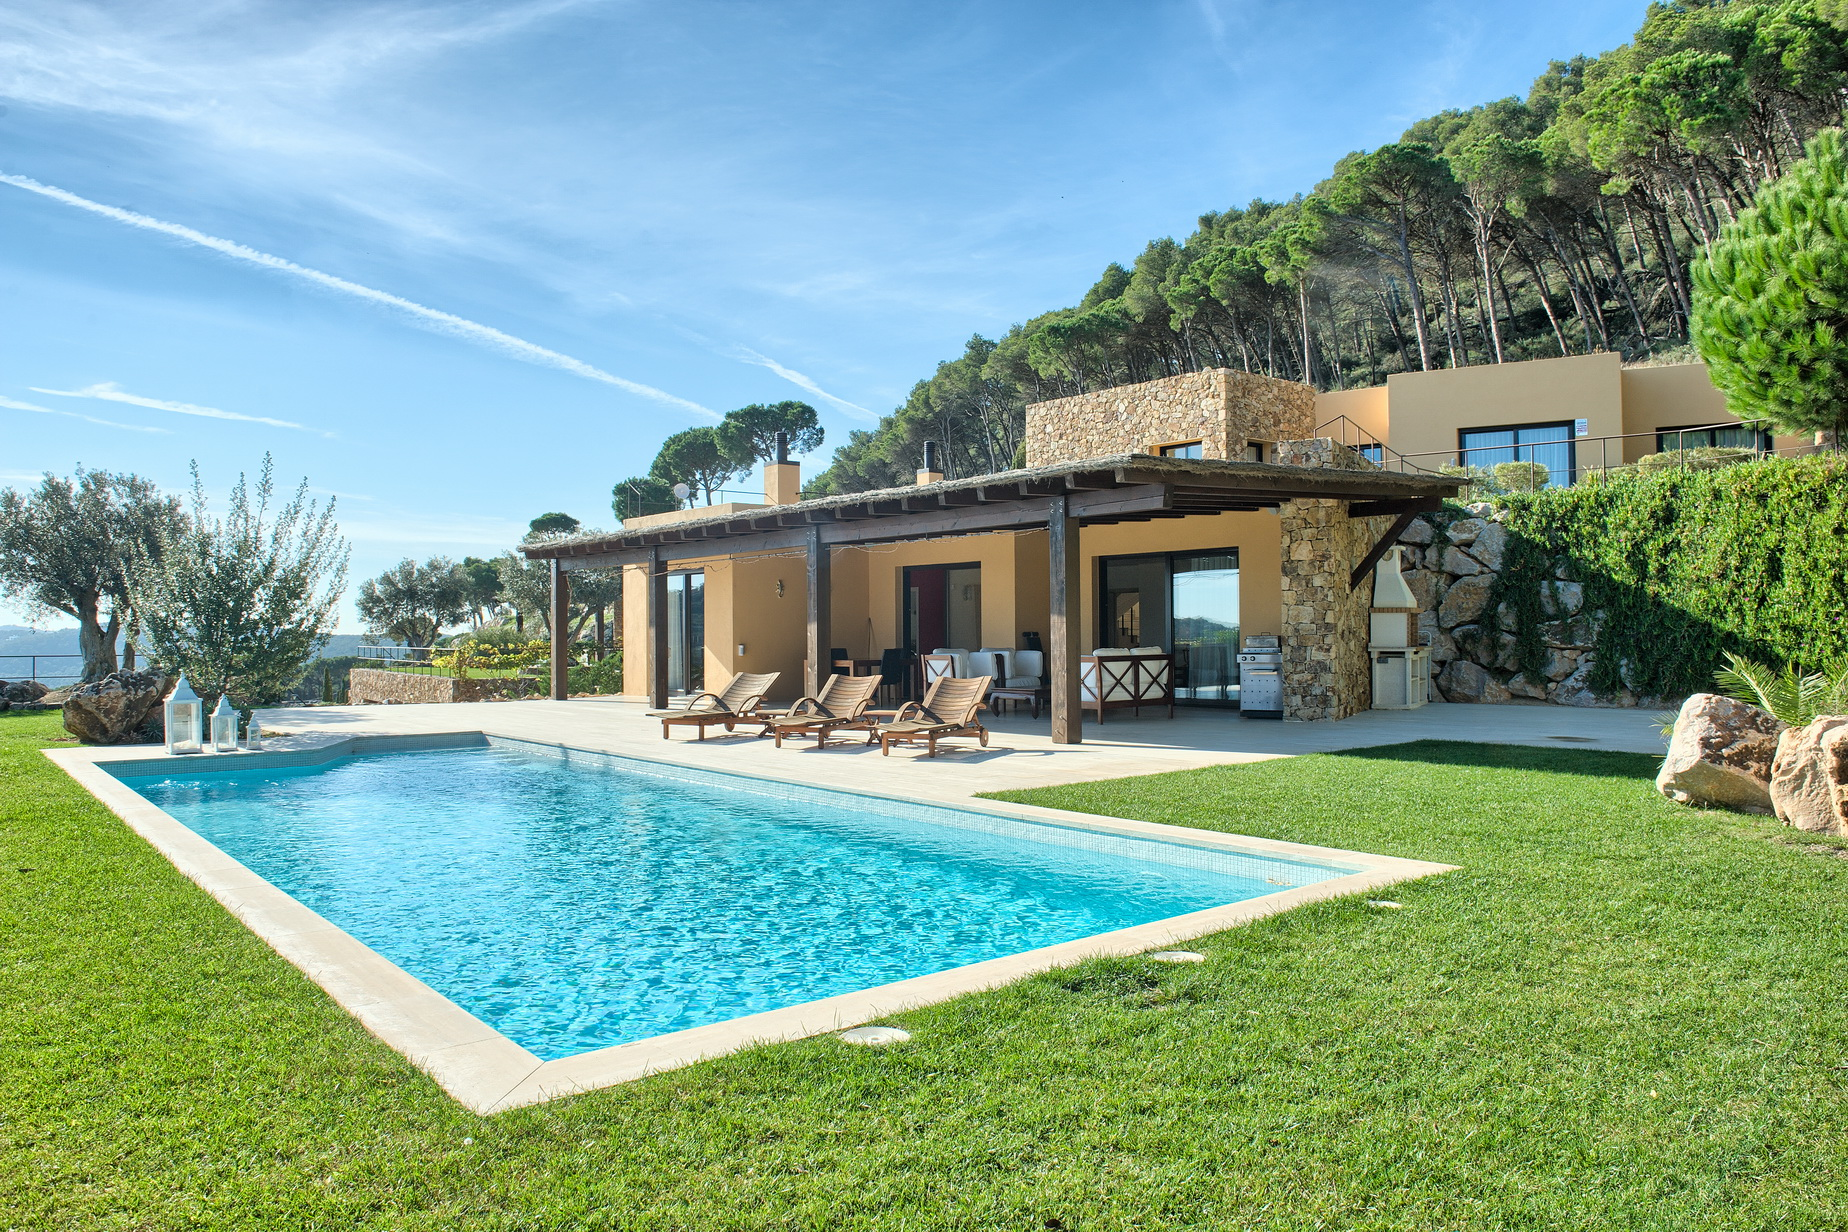 Maison unifamiliale pour l Vente à Luxury villa for sale with beautiful views to the sea in Aiguablava, Begur Begur, Costa Brava, 17255 Espagne